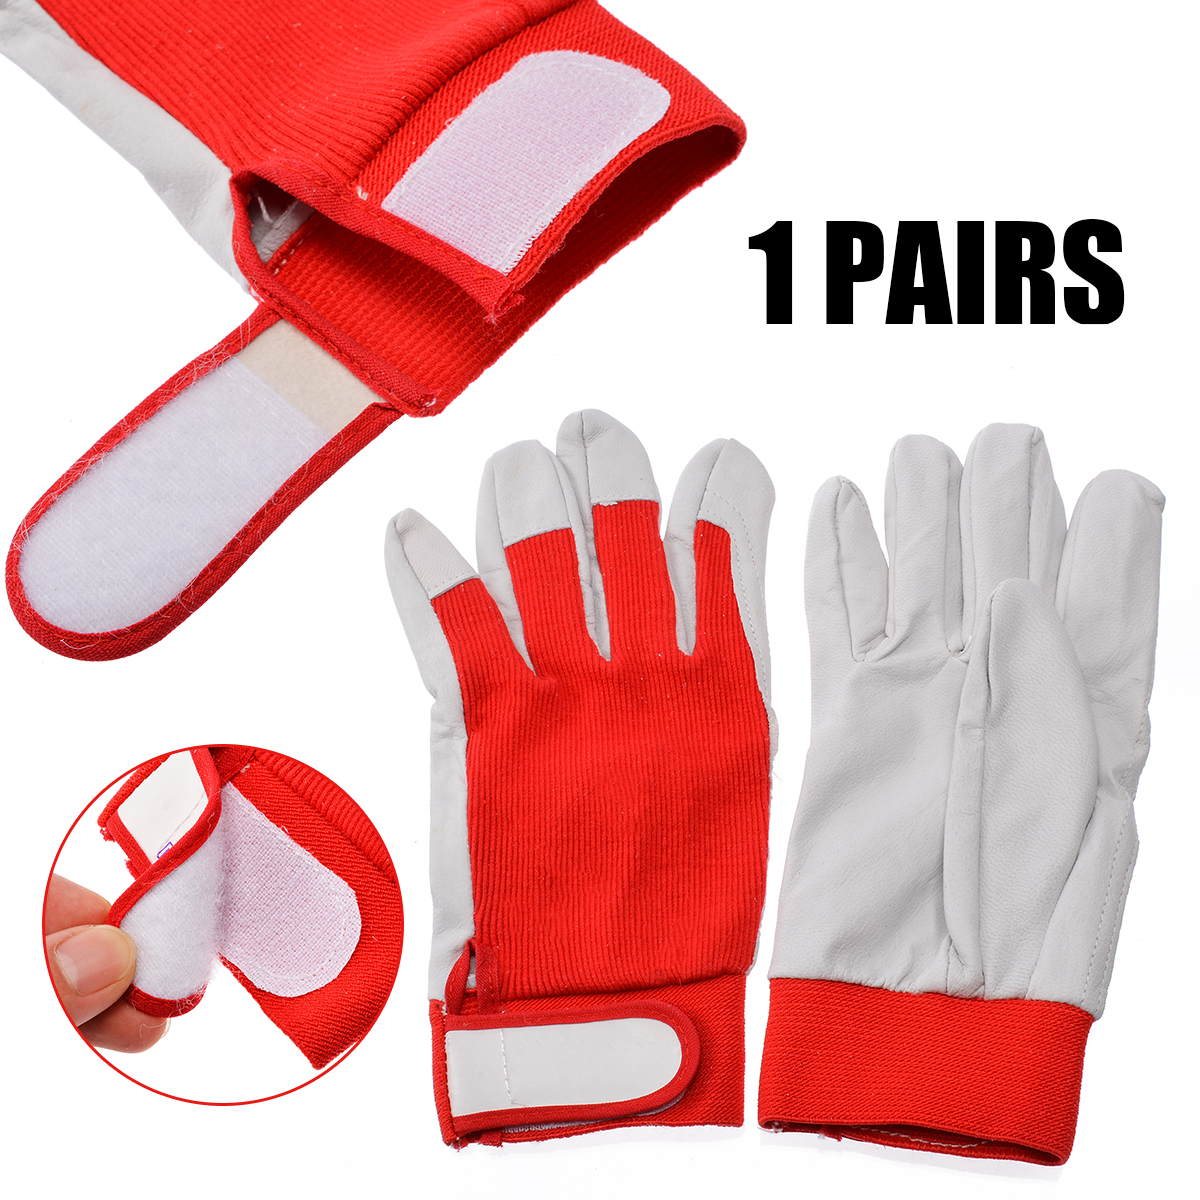 1Pair Finger Weld Gloves Welding Equipment Welding Gloves Heat Shield Cover Safety Guard Protection For Power Tools Accessories1Pair Finger Weld Gloves Welding Equipment Welding Gloves Heat Shield Cover Safety Guard Protection For Power Tools Accessories